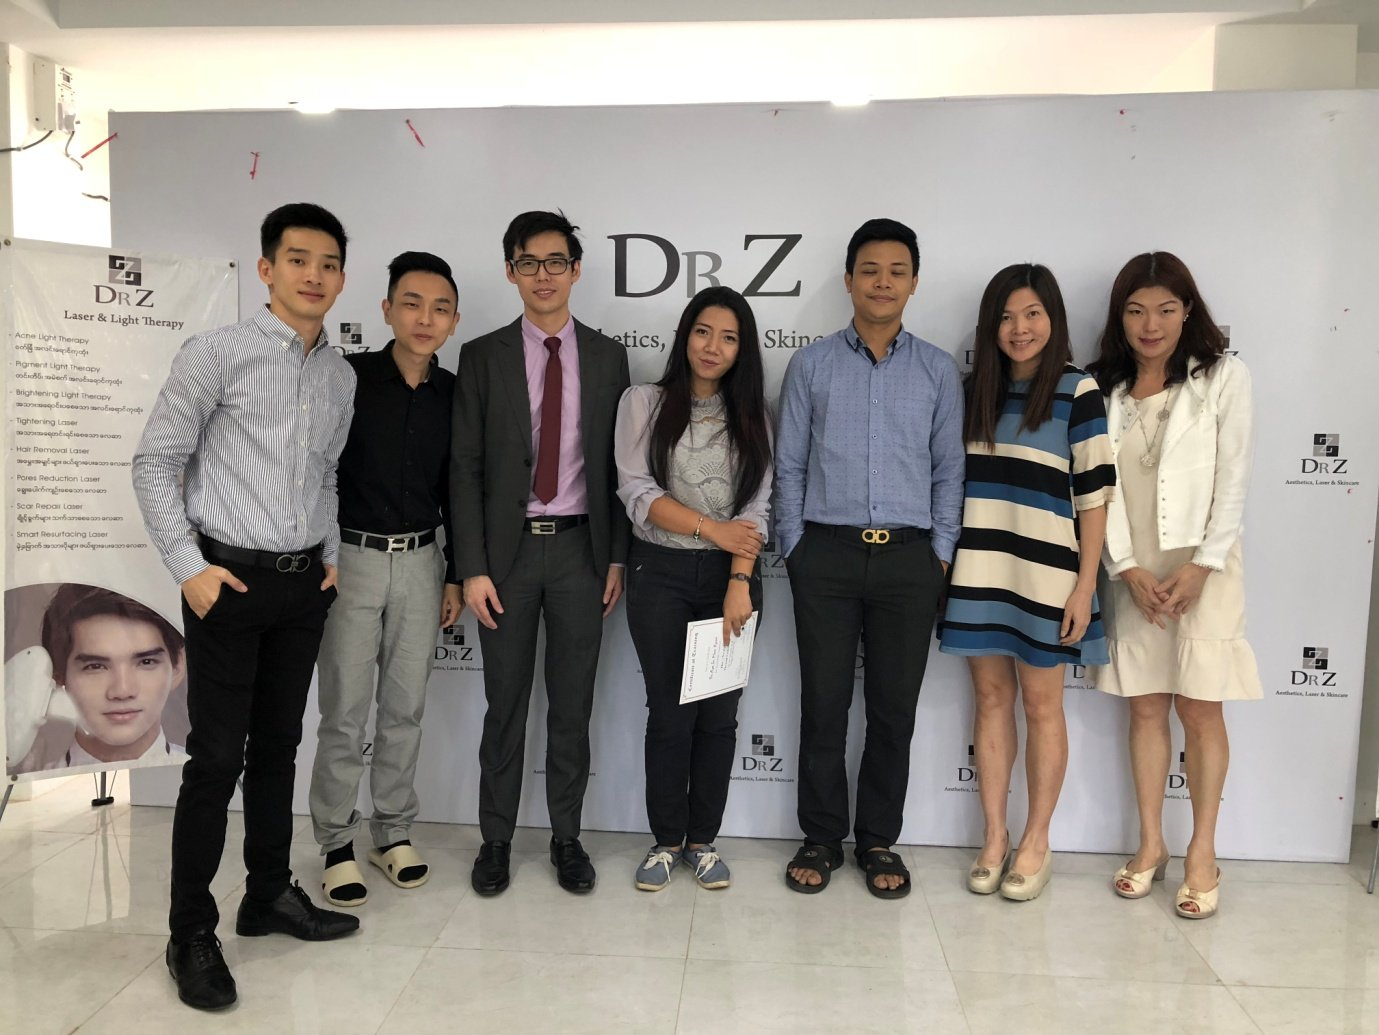 Dr CY Chua, Elogio Asia and DrZ Clinic